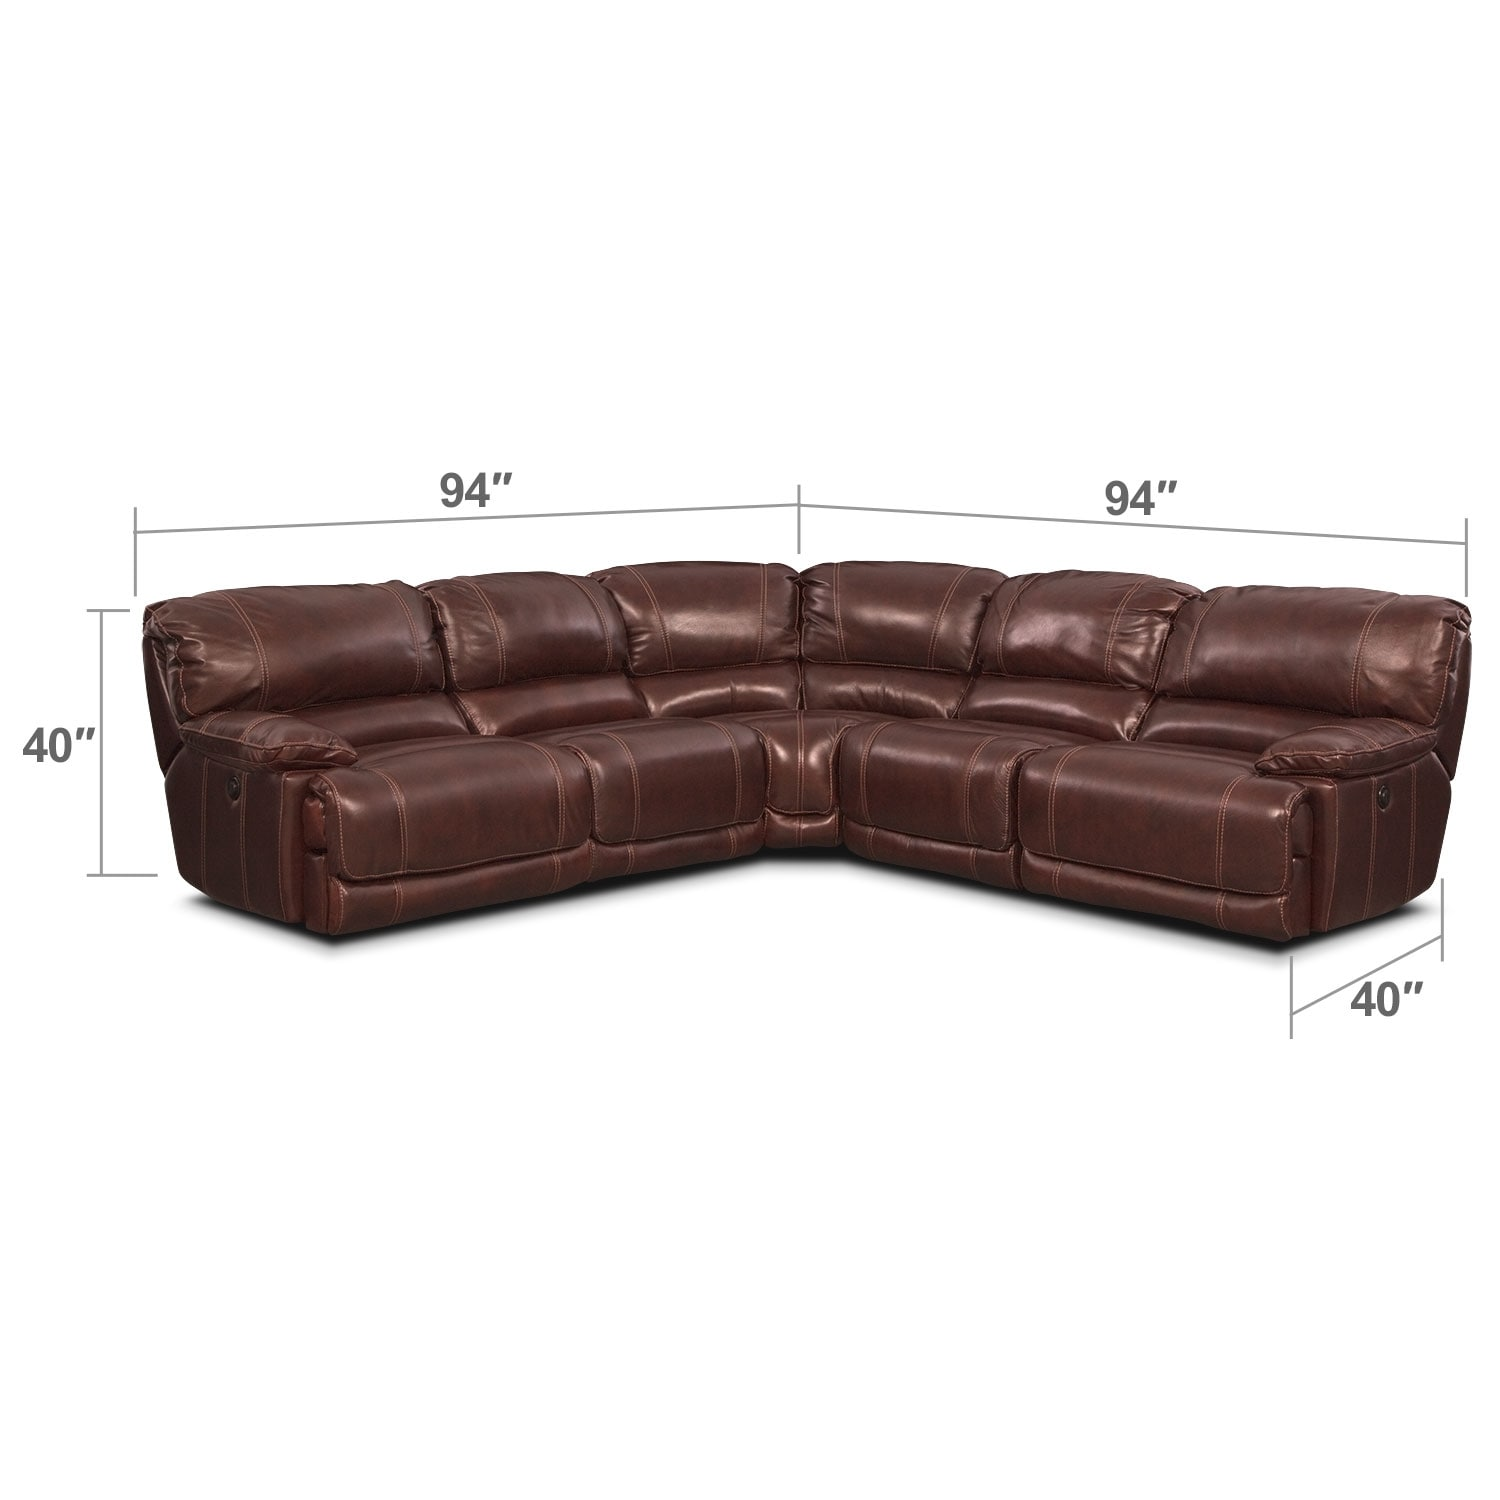 Living Room Furniture - St. Malo III 5 Pc. Power Reclining Sectional